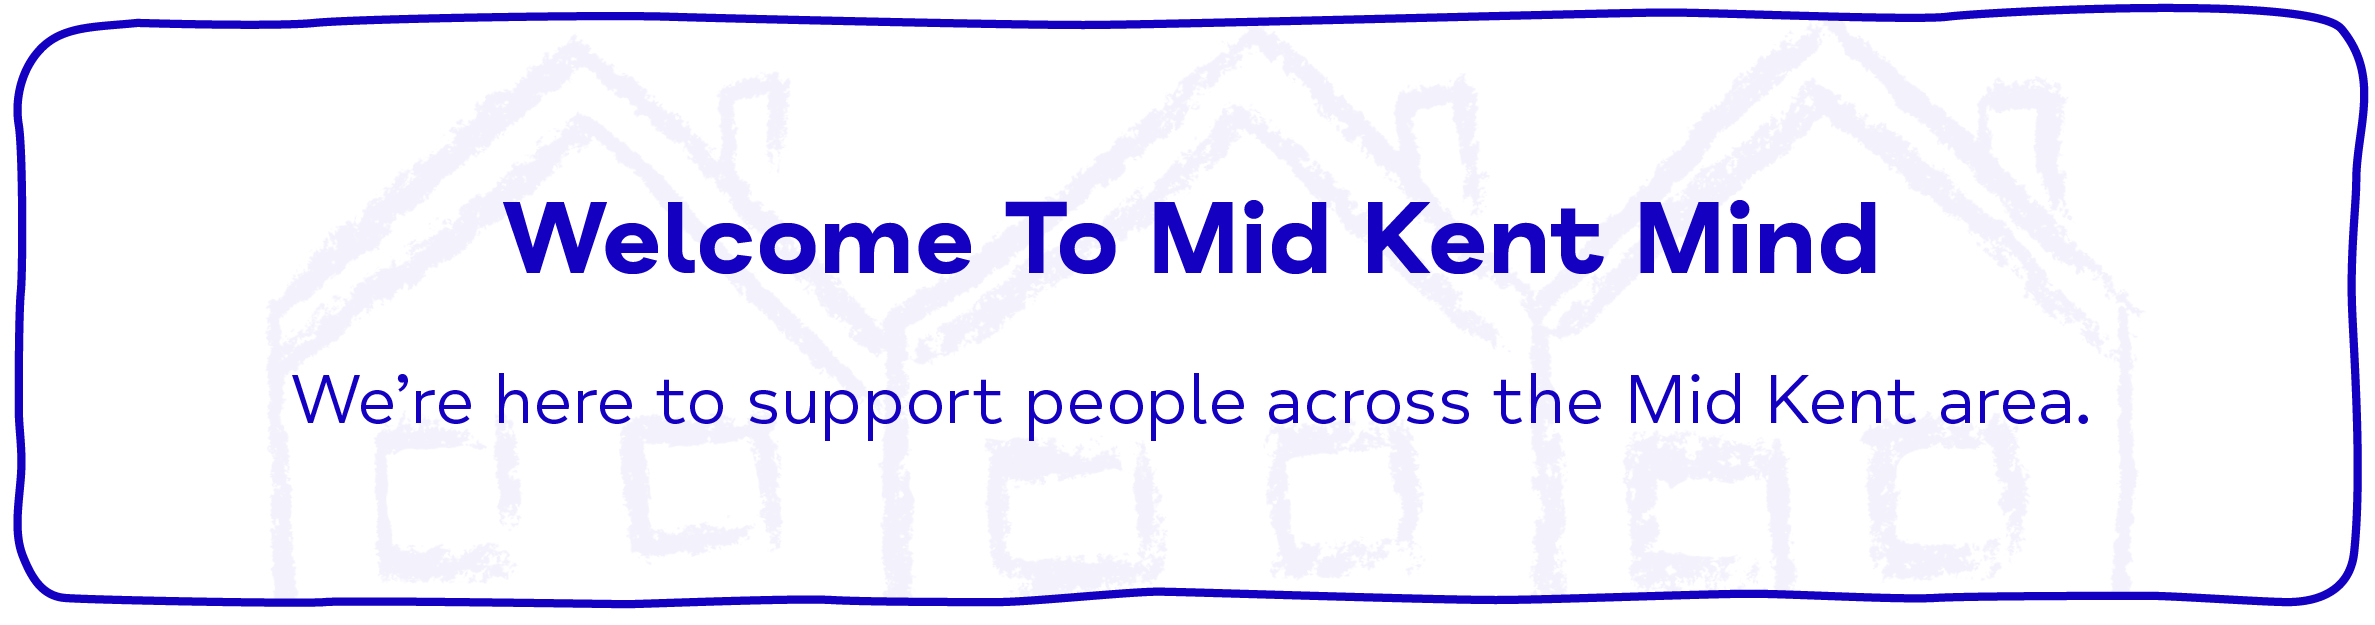 Welcome To Mid Kent Mind We're here to support people across the Mid Kent area.